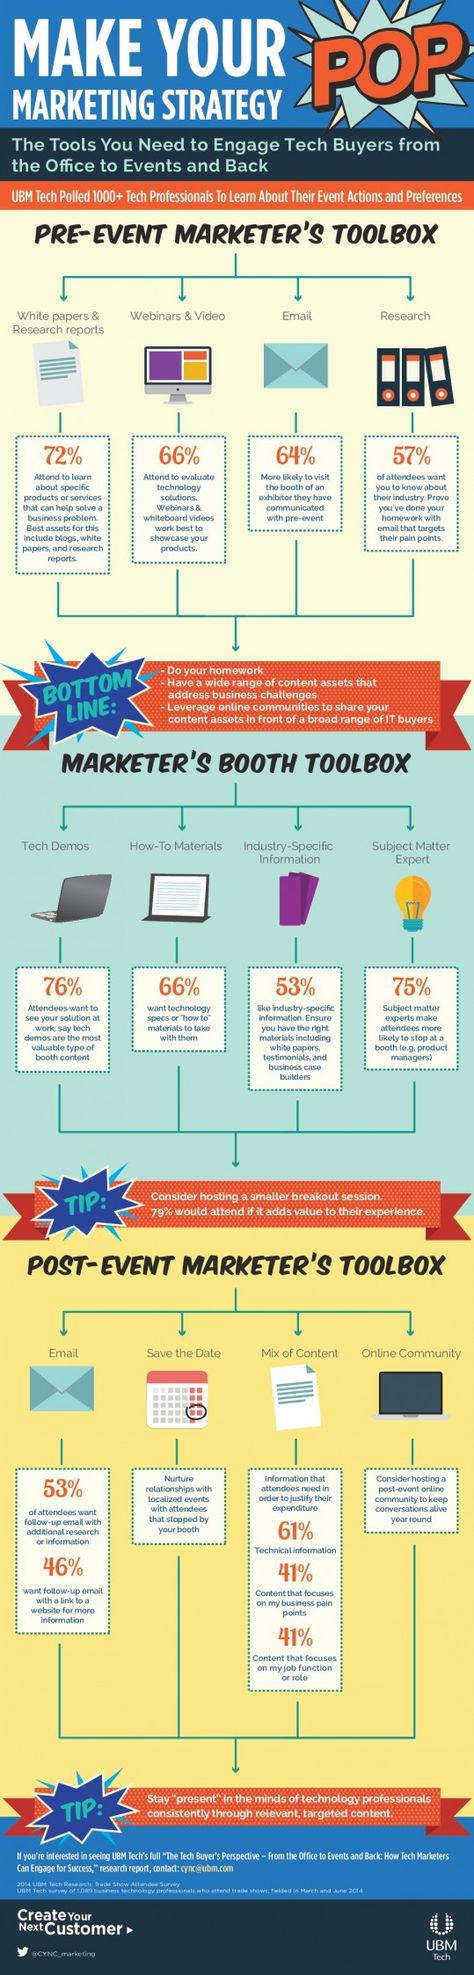 Friday Infographic: Make Your Marketing Strategy POP | State of Digital